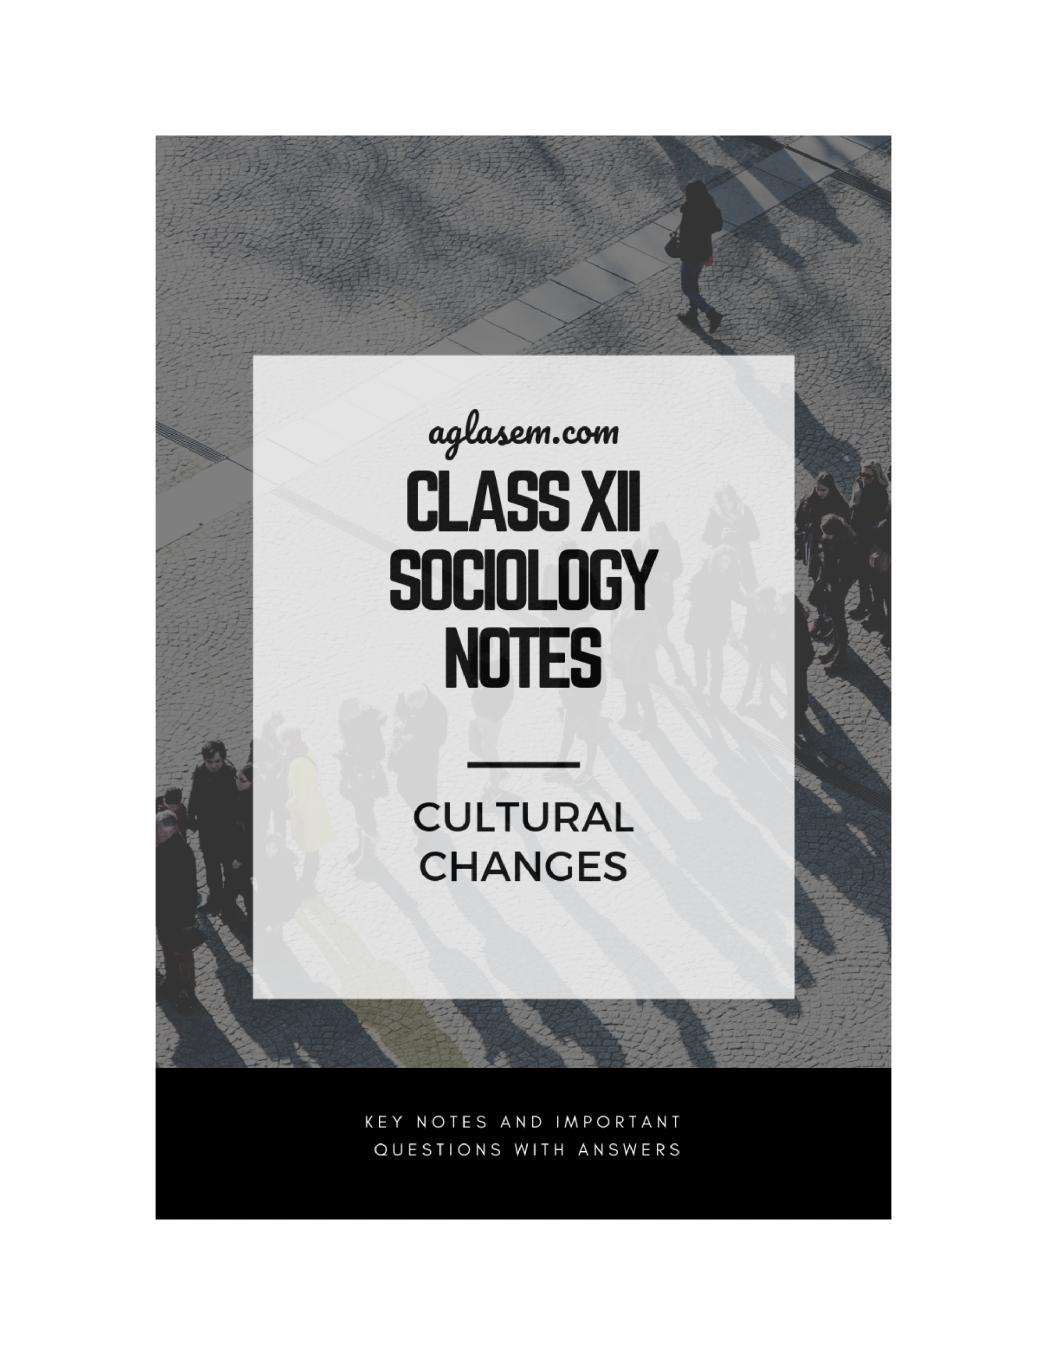 Class 12 Sociology Notes for Cultural Changes